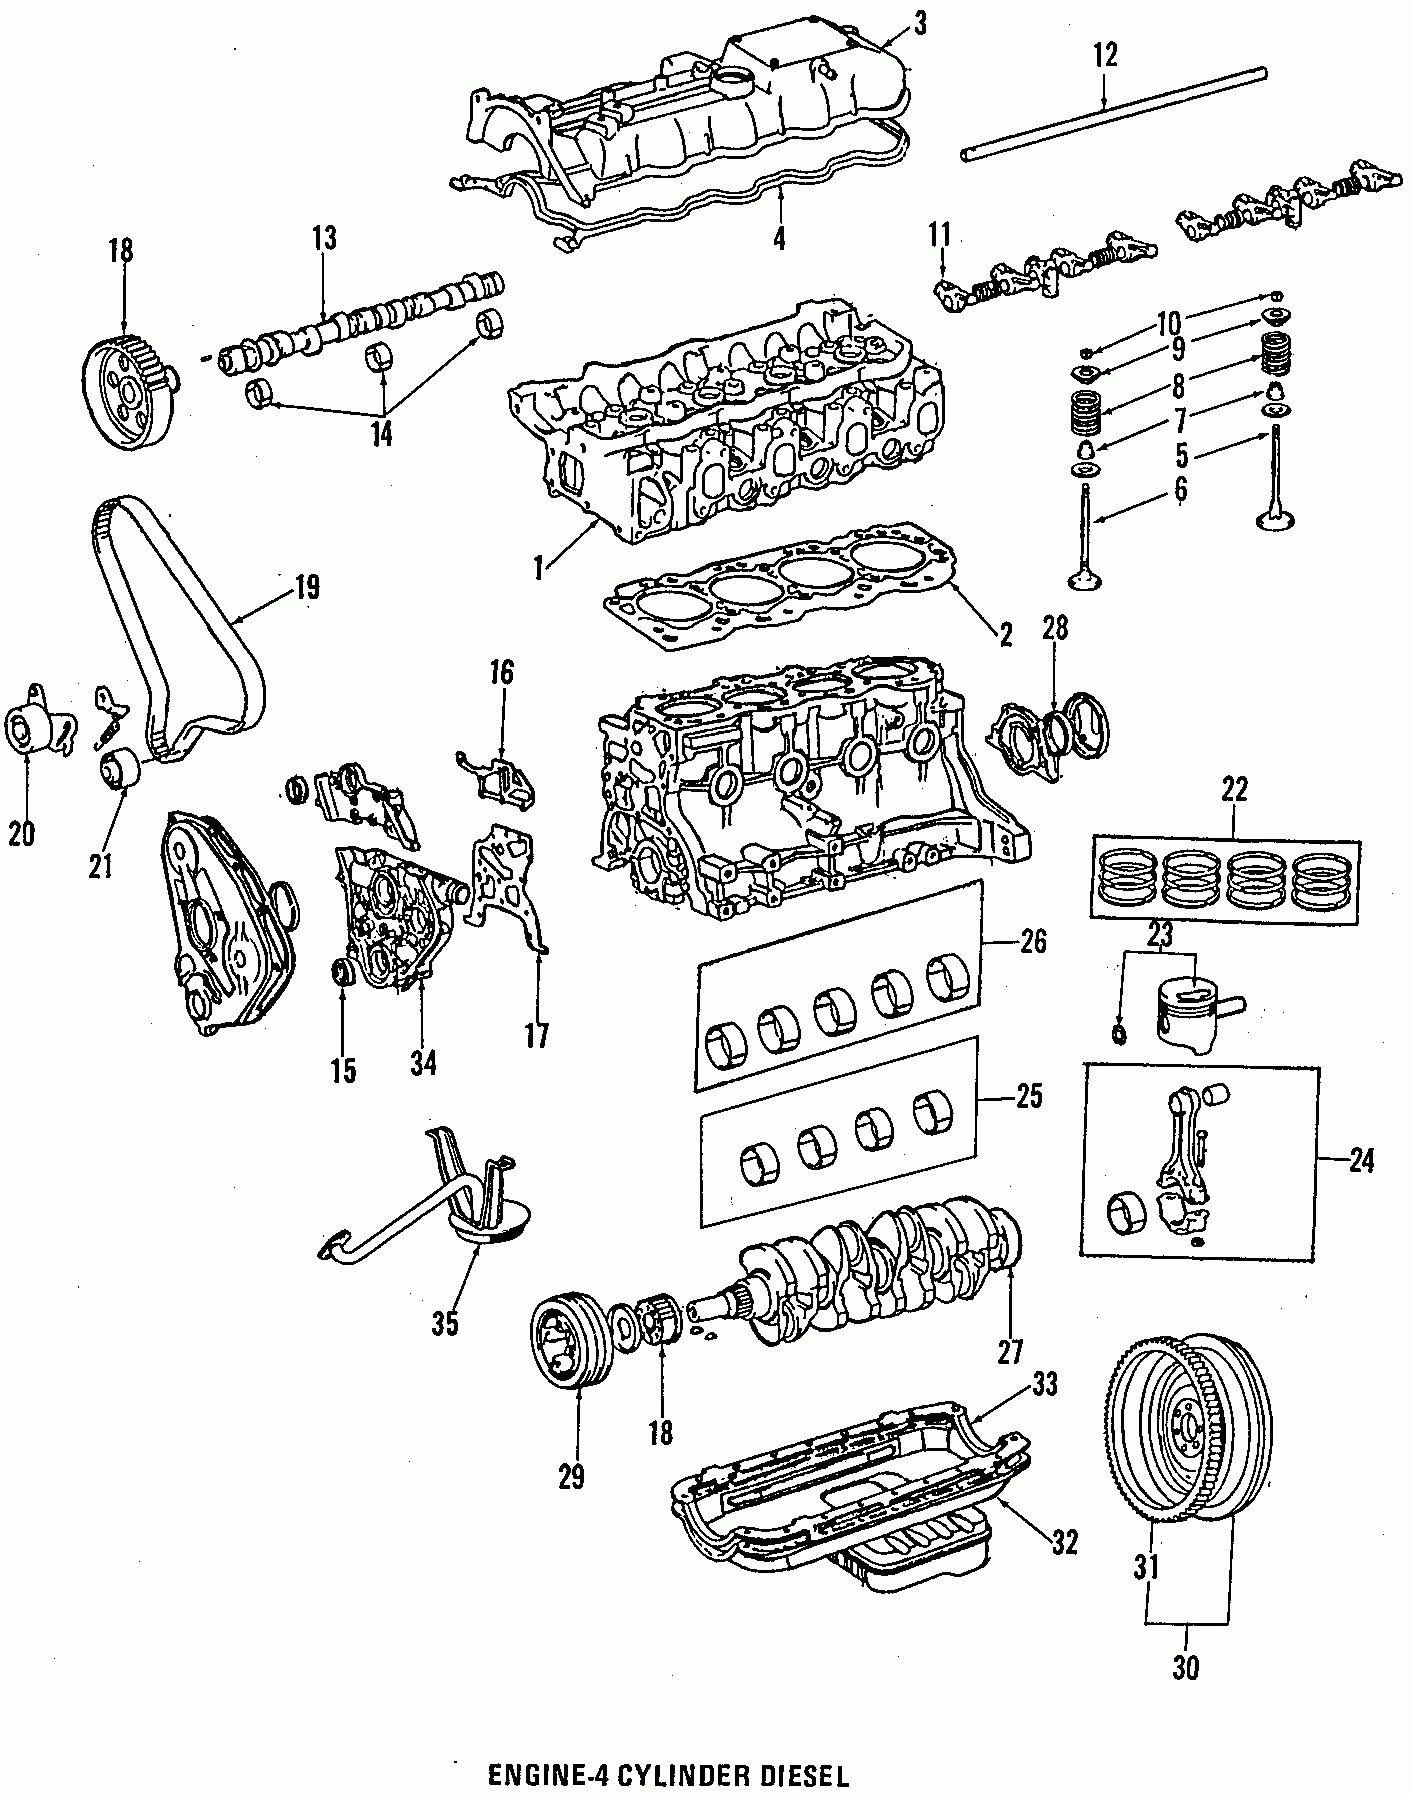 2009 toyota ta engine diagram